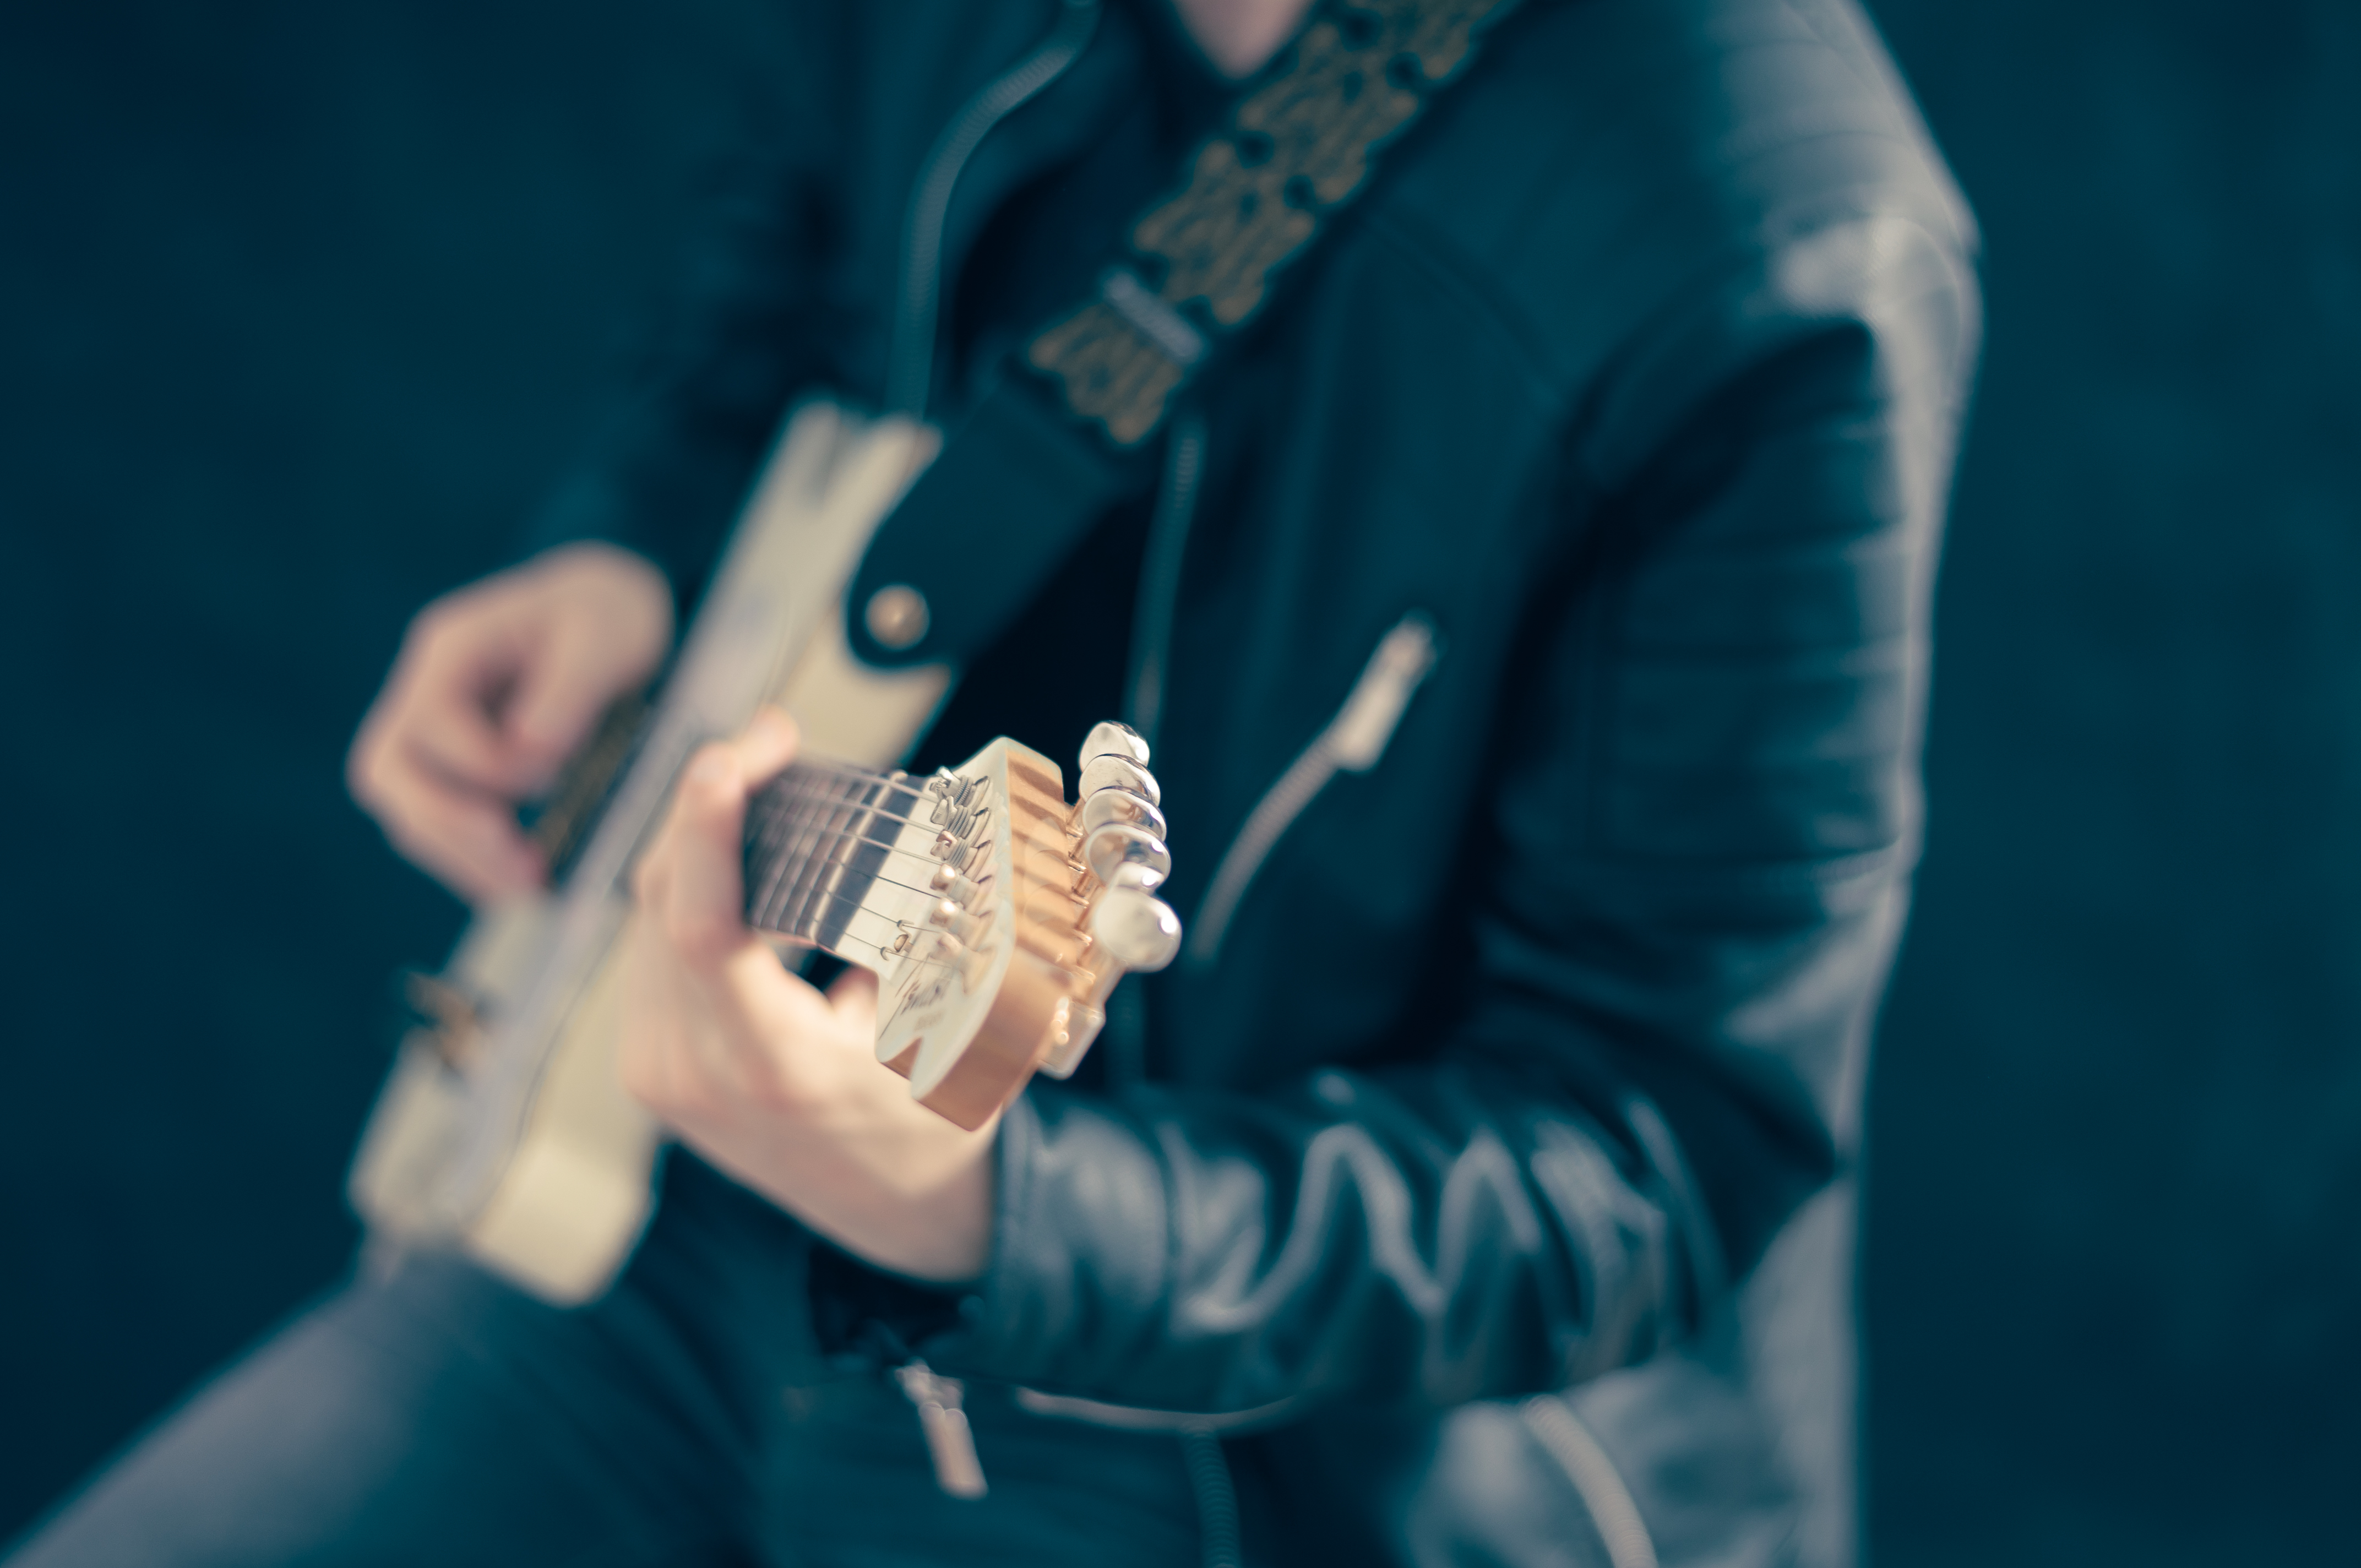 A blurry shot of a person in a leather jacket playing the guitar